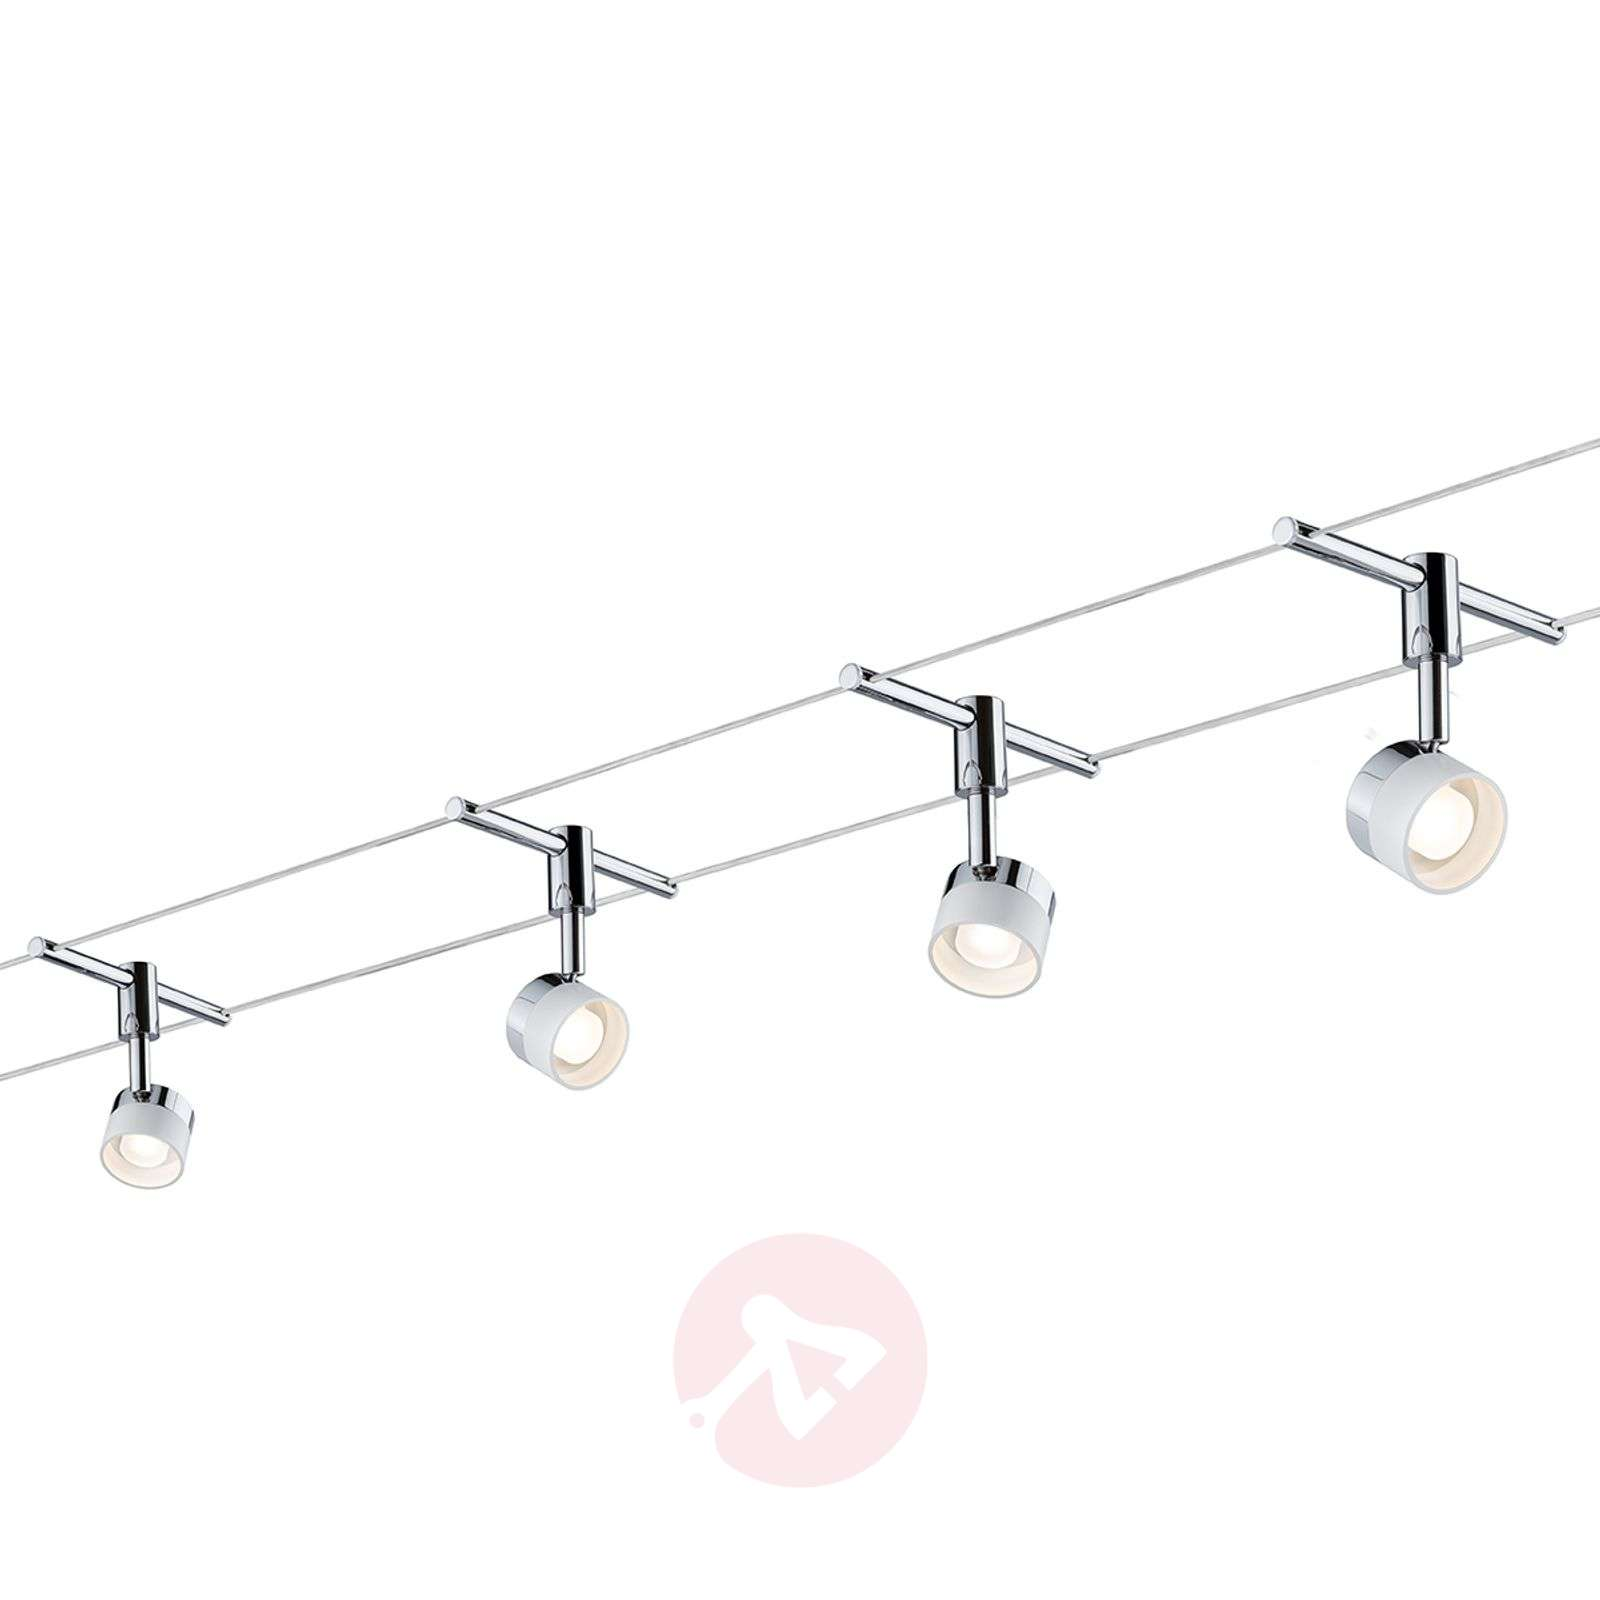 Syst. linkowy LED STAGE z 4 okr. lampkami-7600628-01